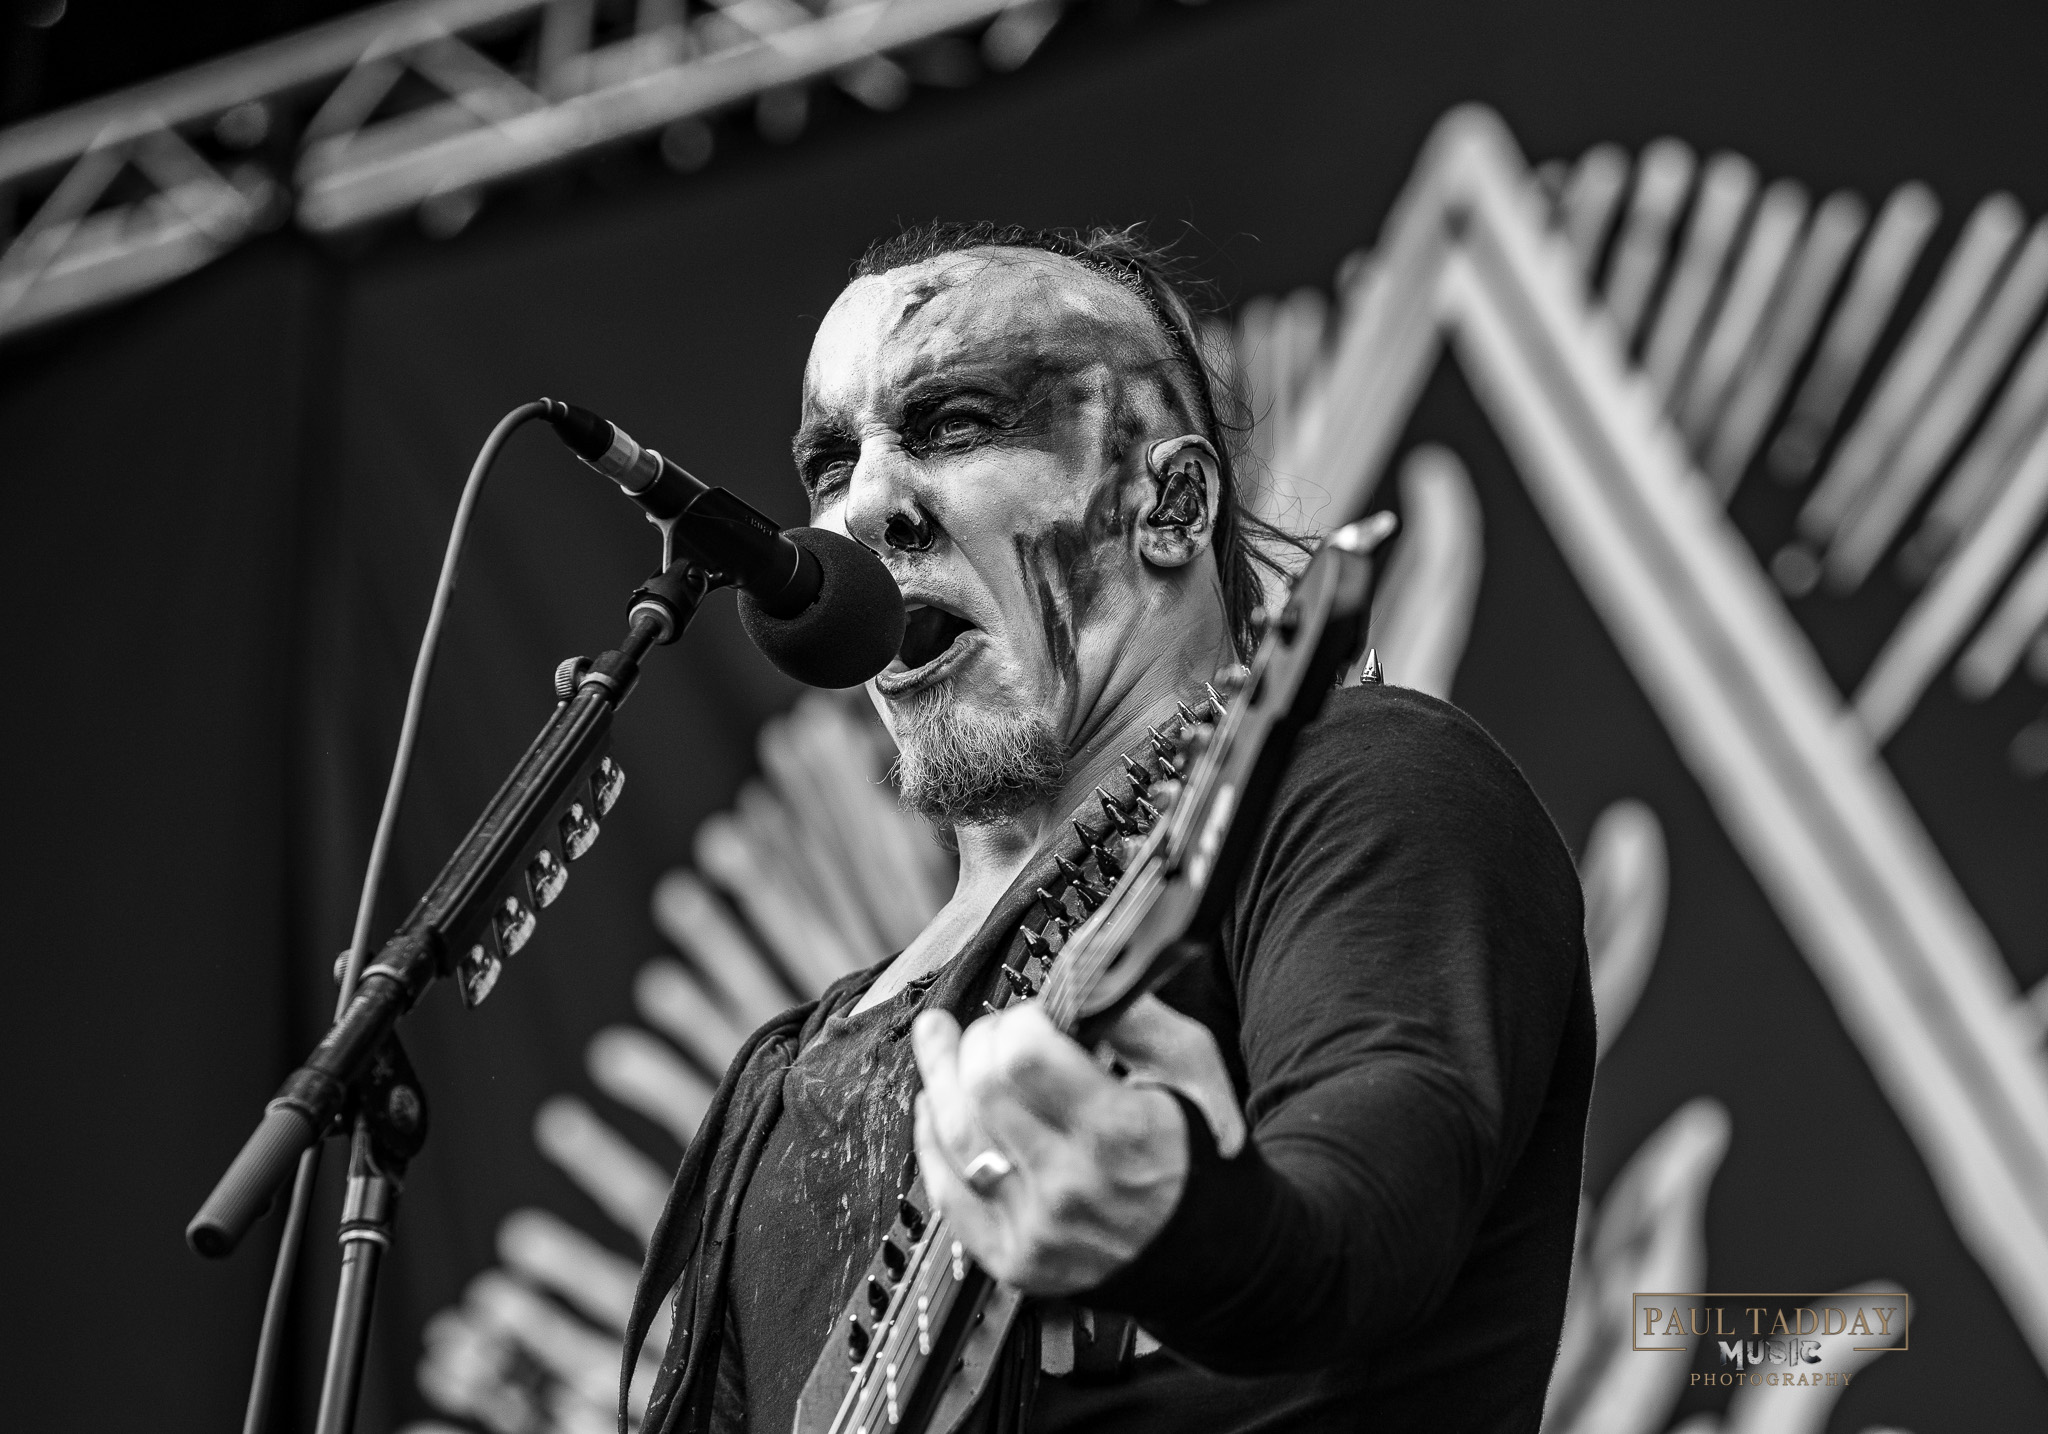 behemoth - download melbourne - march 2019 - web - paul tadday photography - 20.jpg